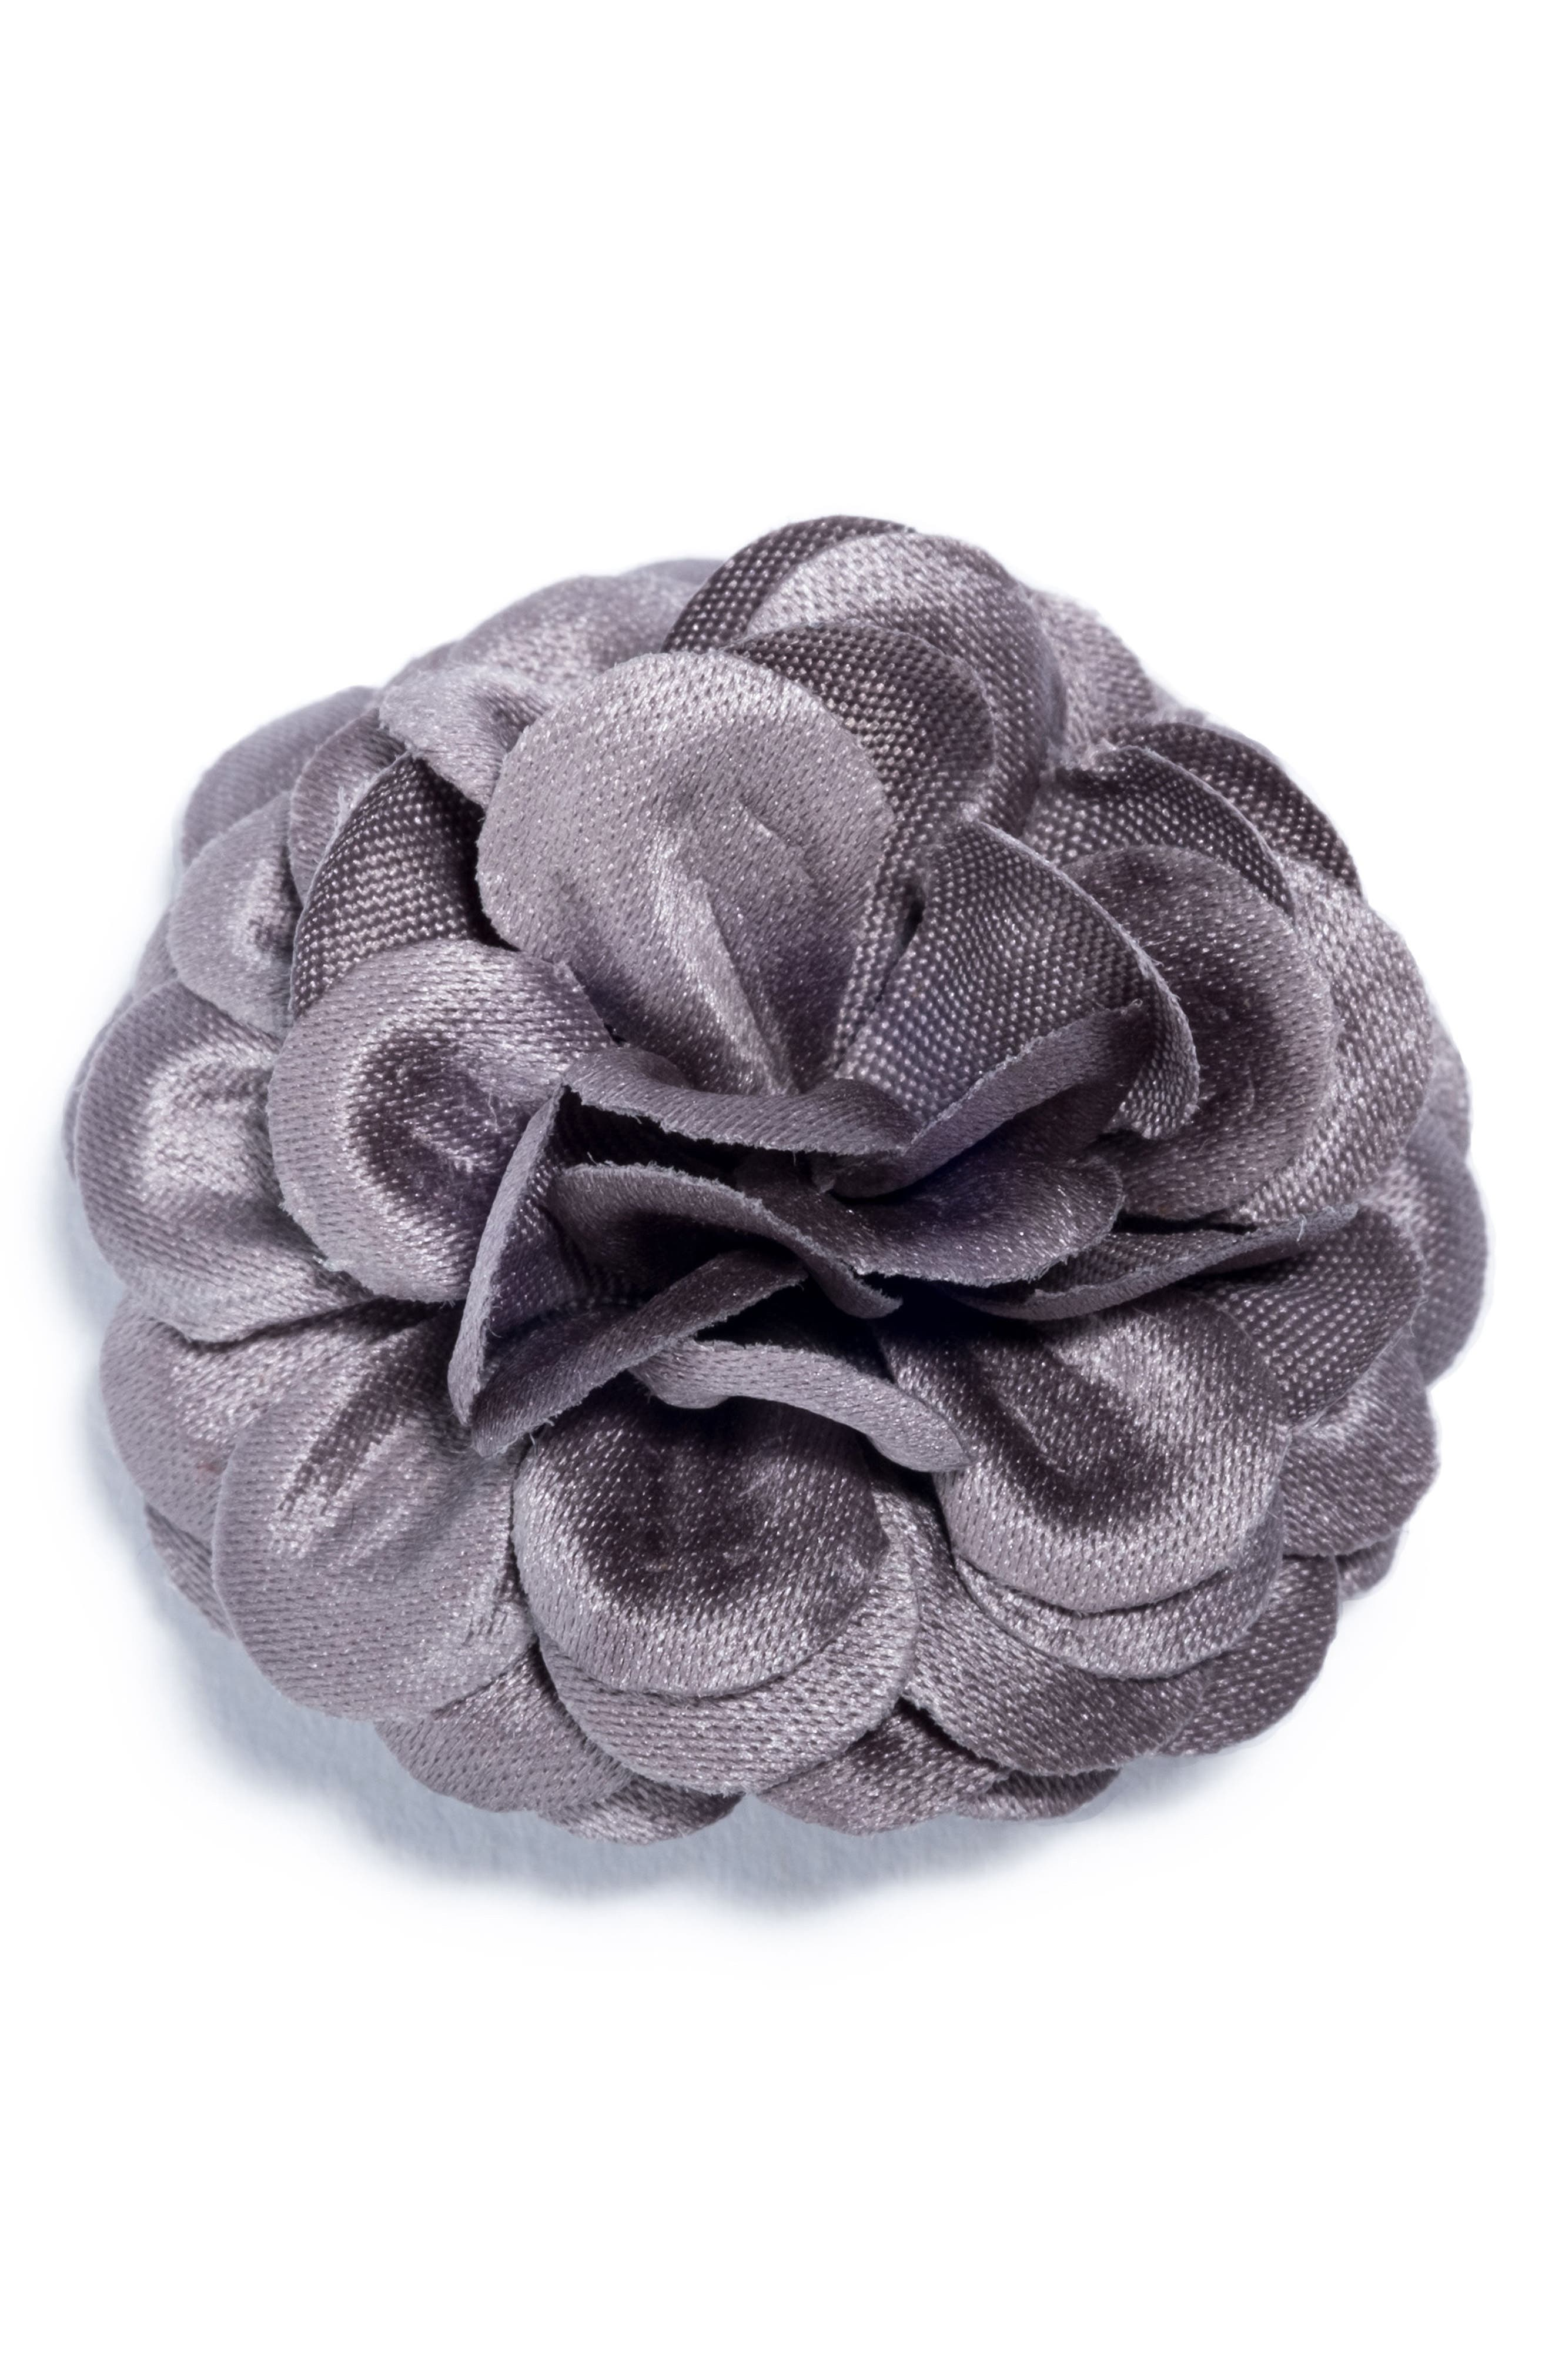 hook + ALBERT Large Lapel Flower